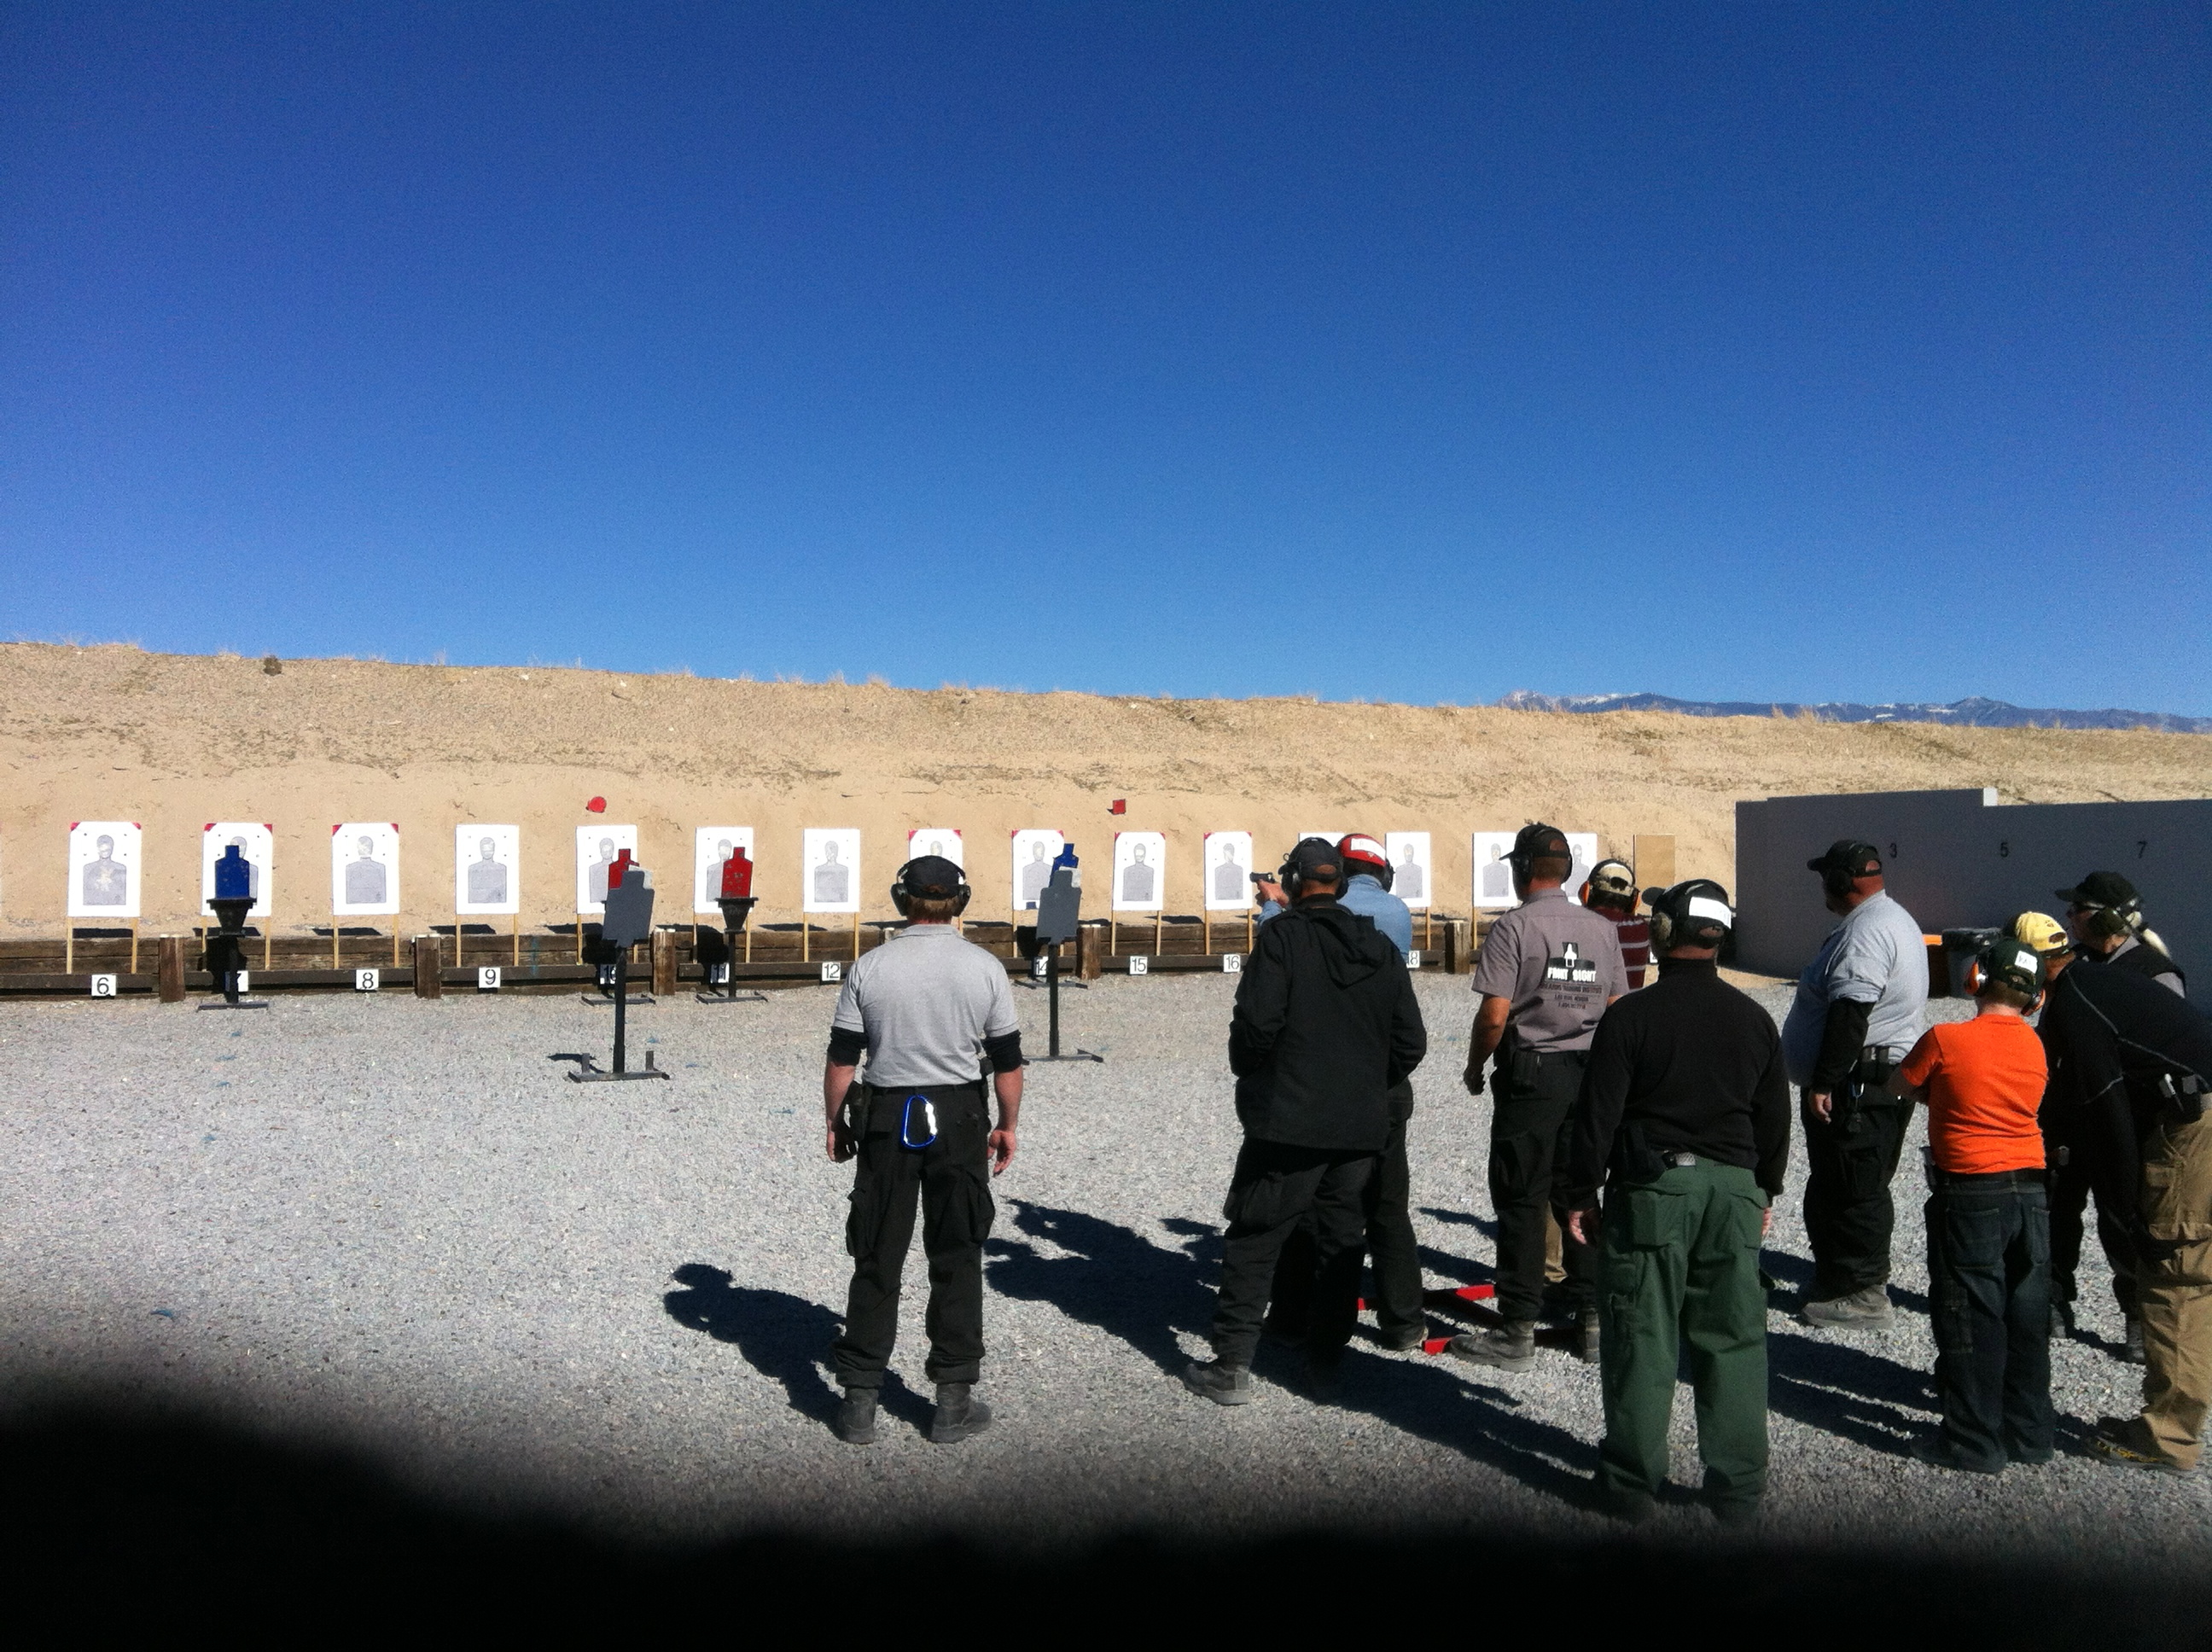 Frontsight Handgun Training